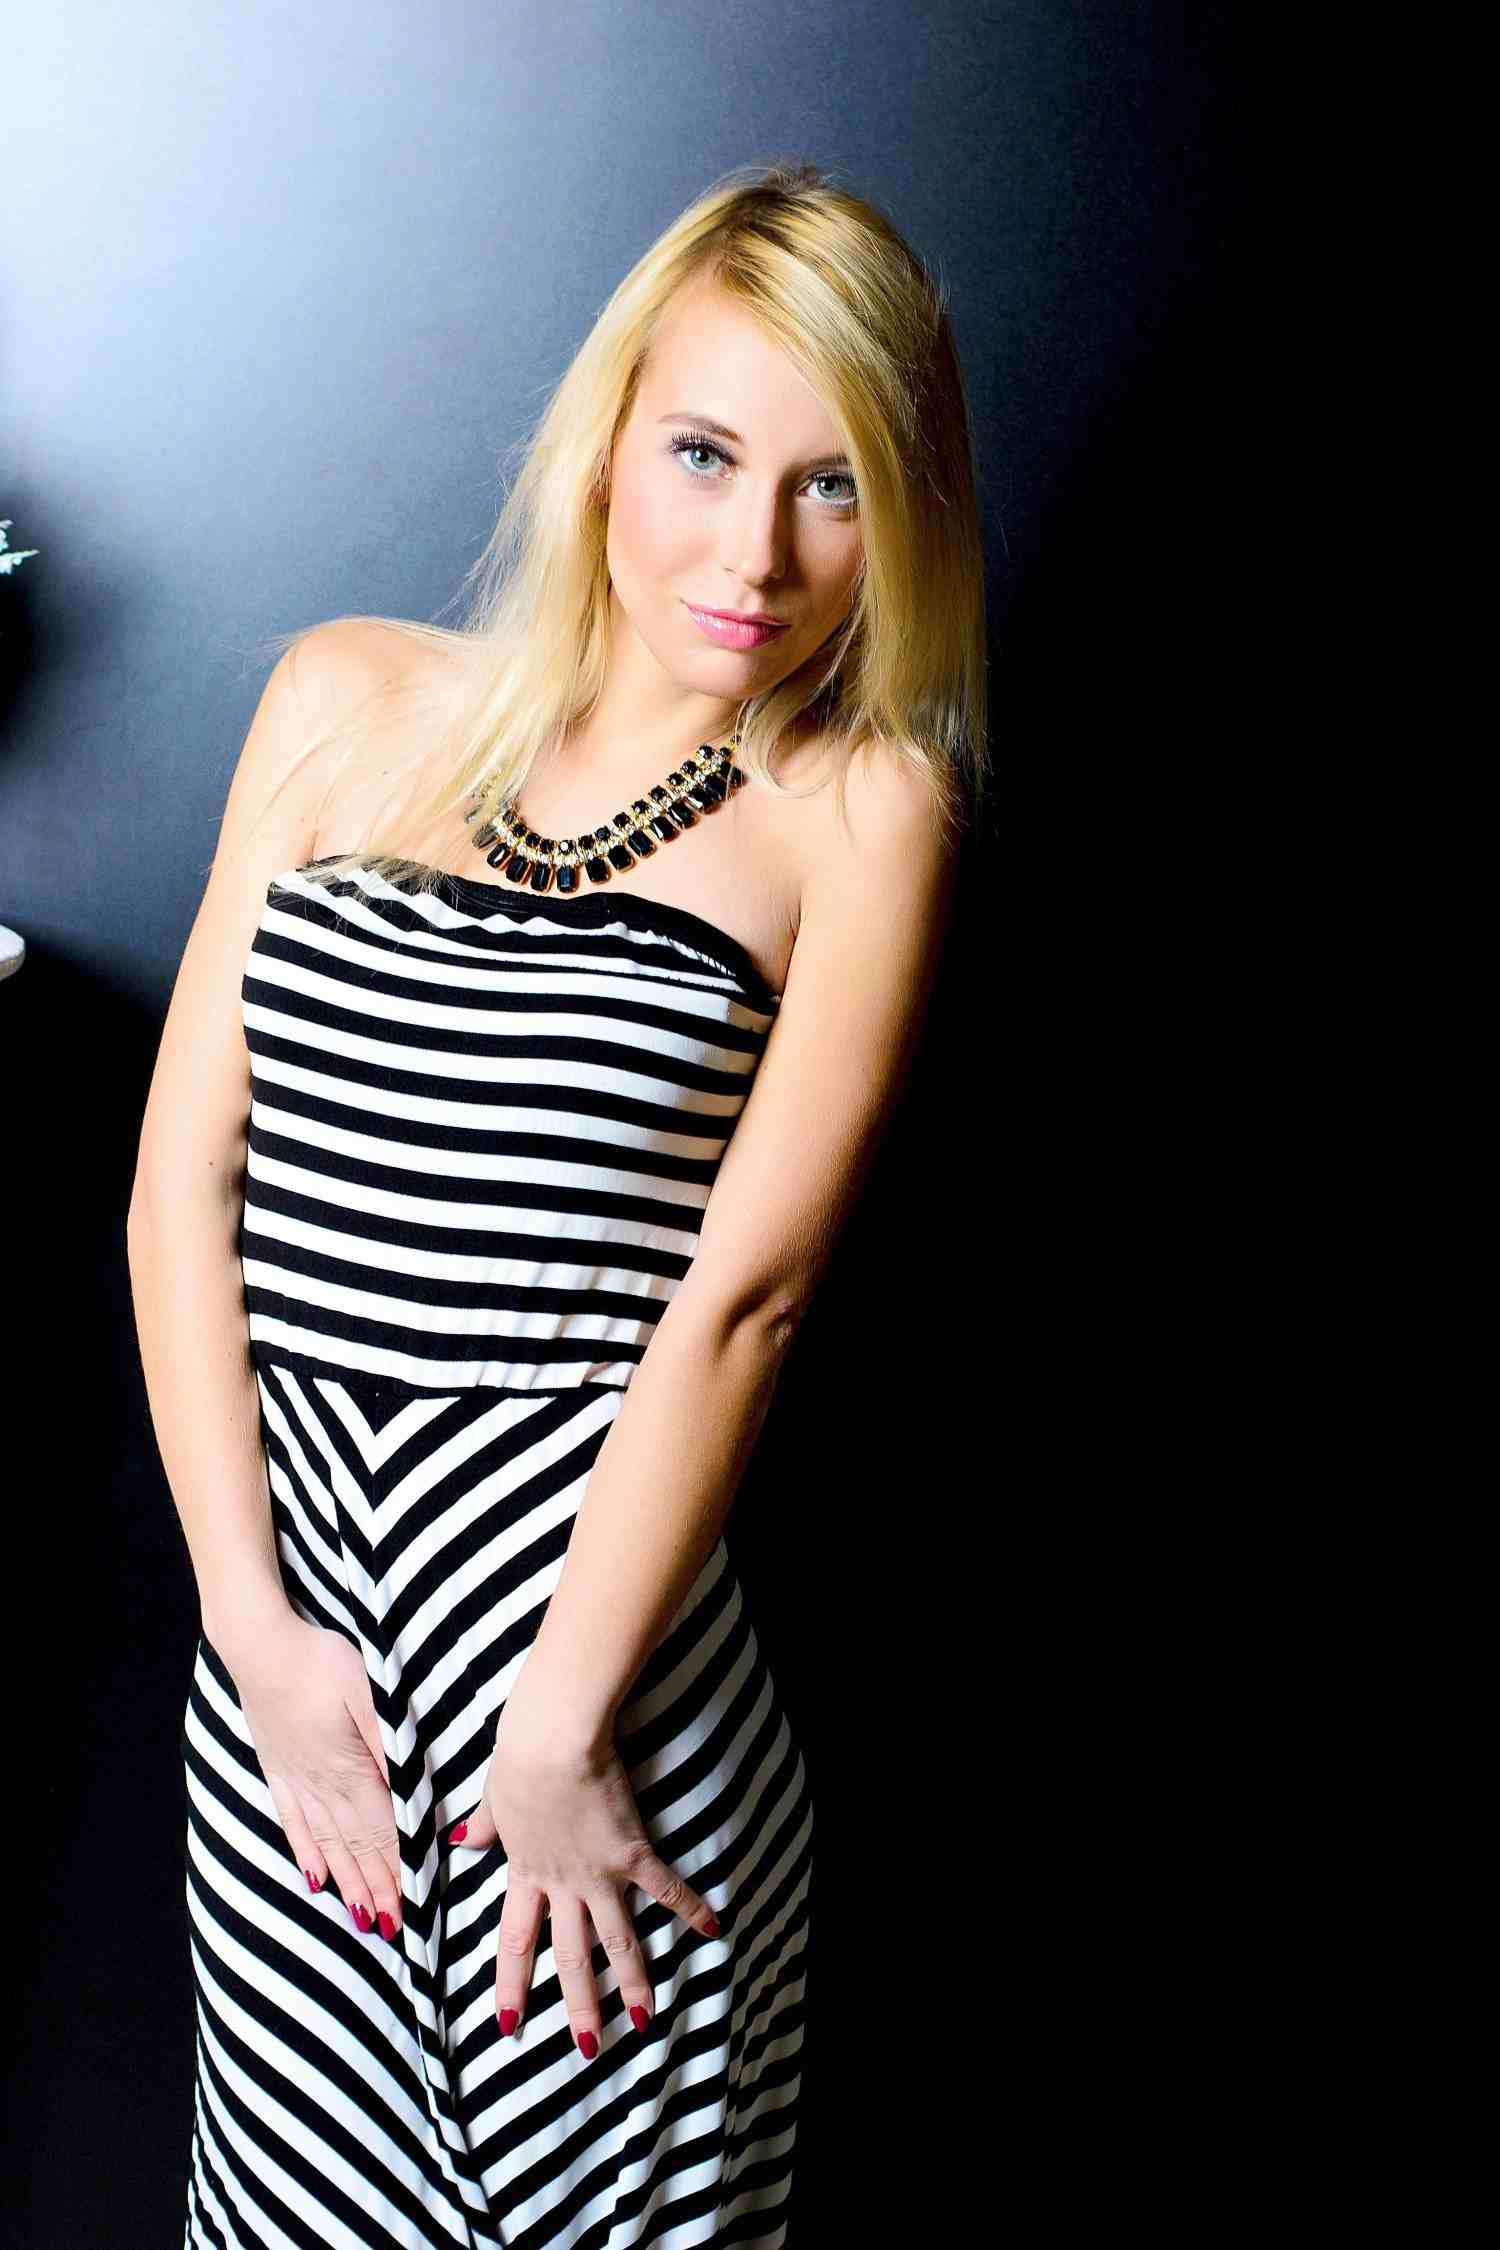 married and horny women in wroclaw